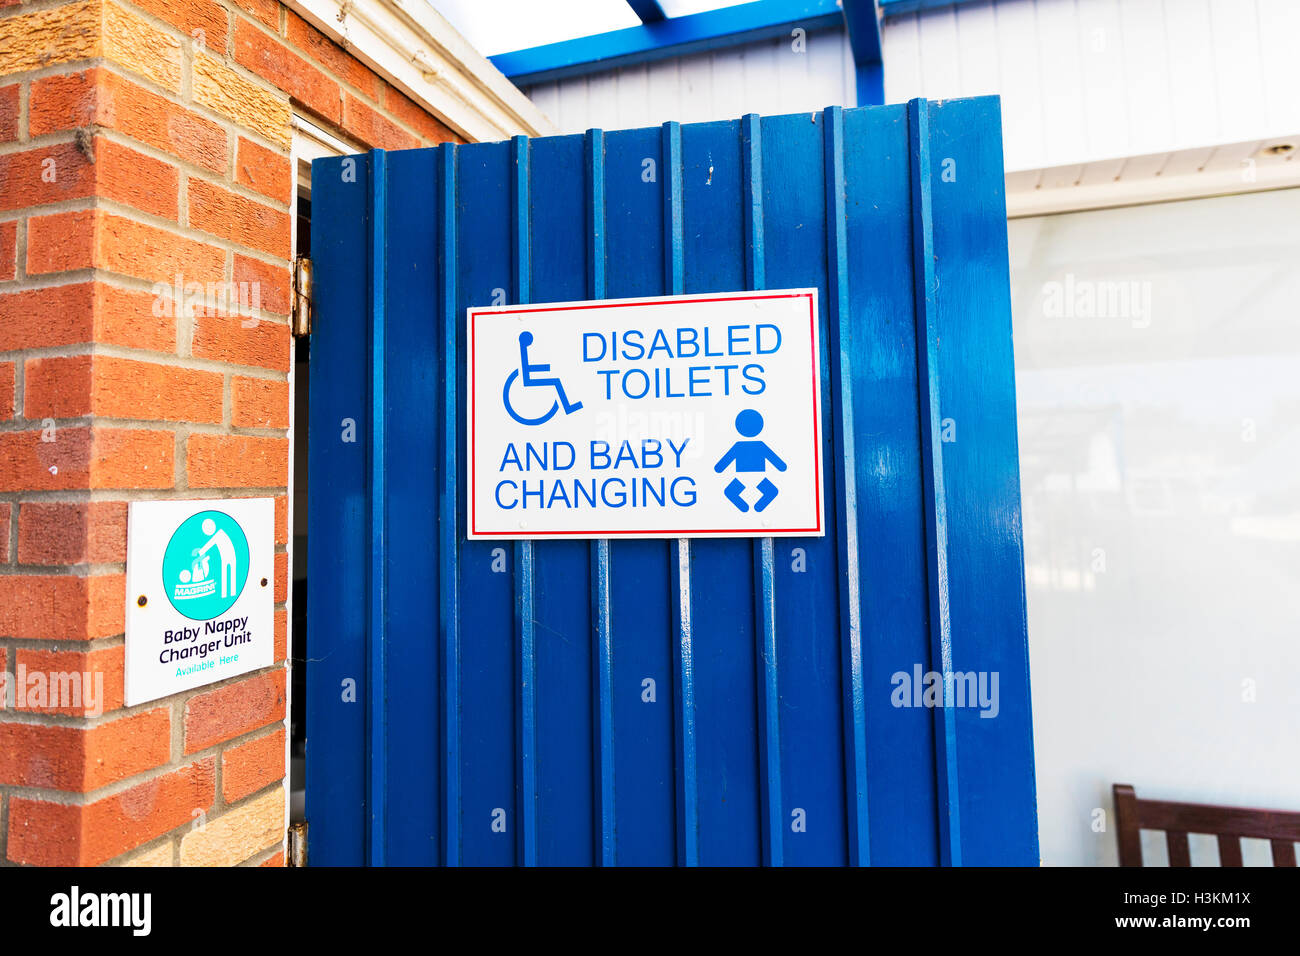 Disabled toilets sign baby changing toilets sign signs baby nappy changer unit sign GB UK England - Stock Image